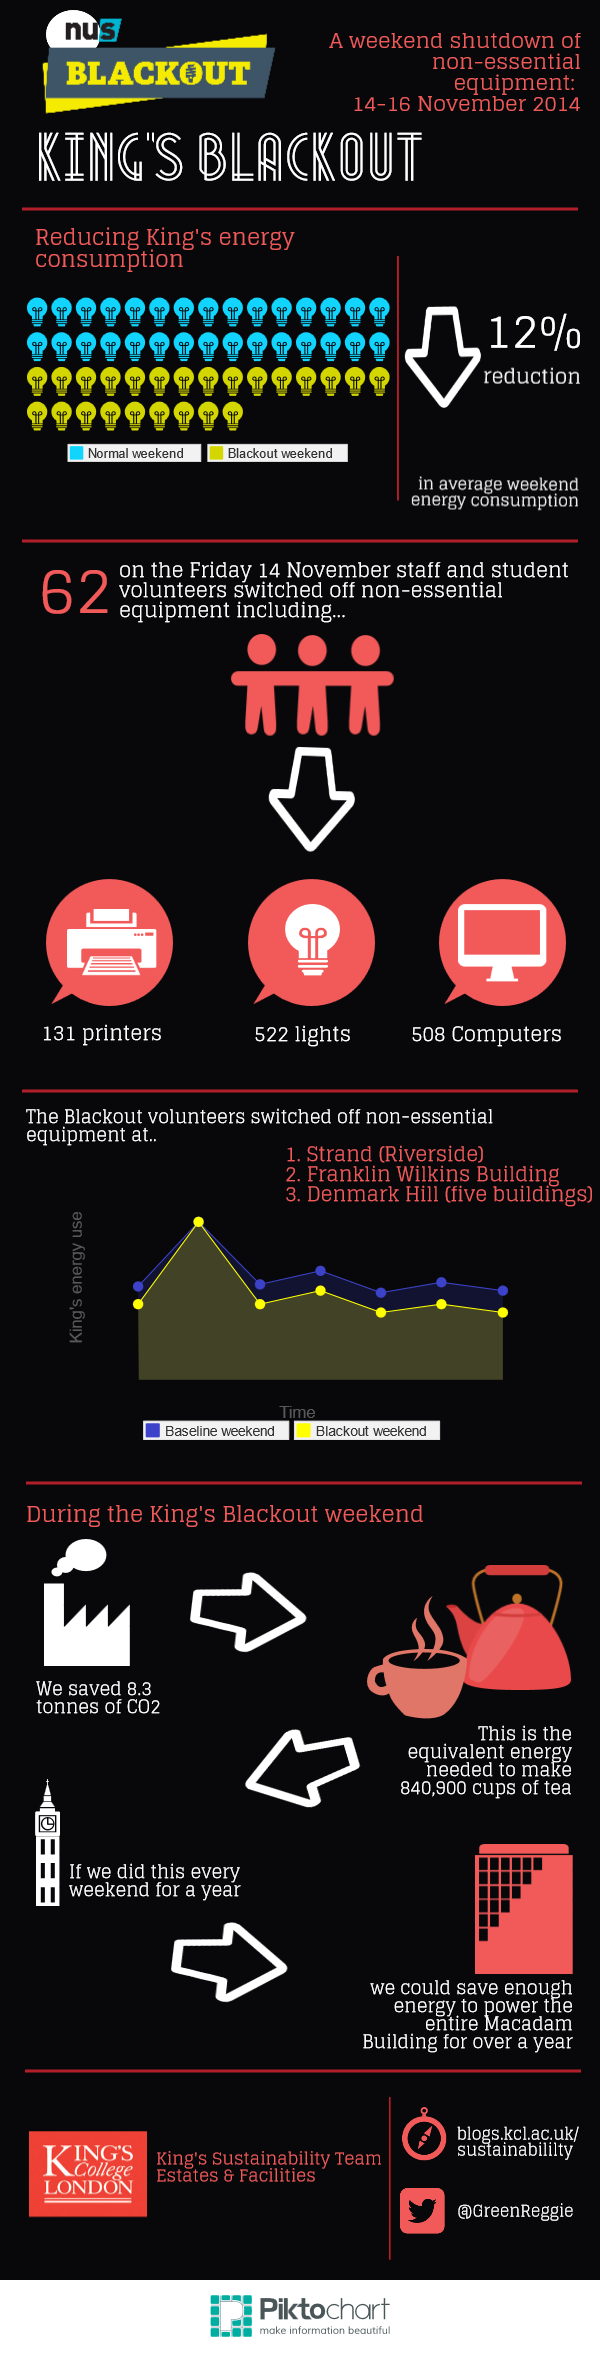 King's Blackout results infographic